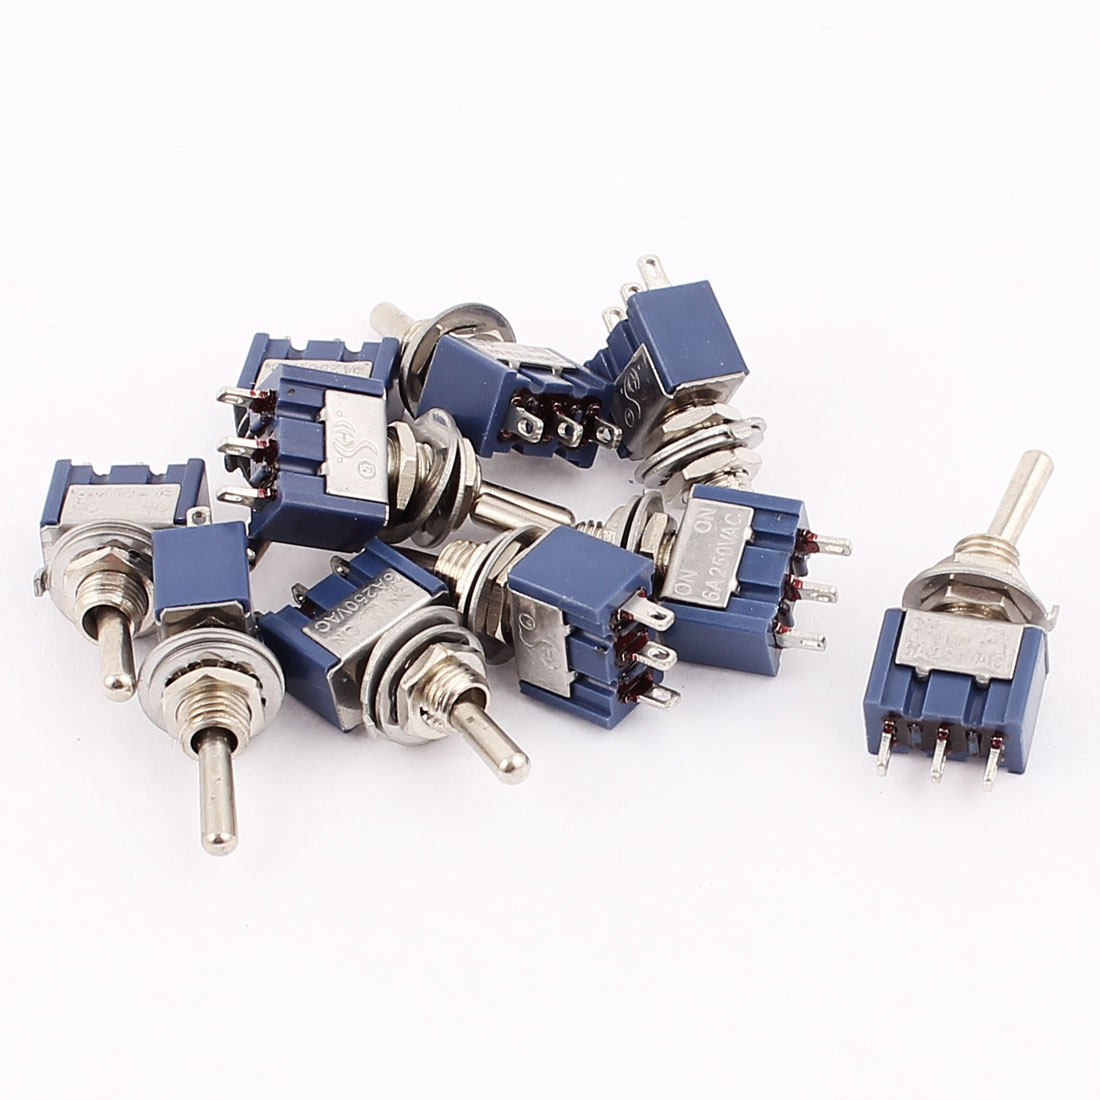 AC 250V 6A SPDT ON-ON 2 Positions 3 Terminals Latching Miniature Toggle Switch 10 Pcs